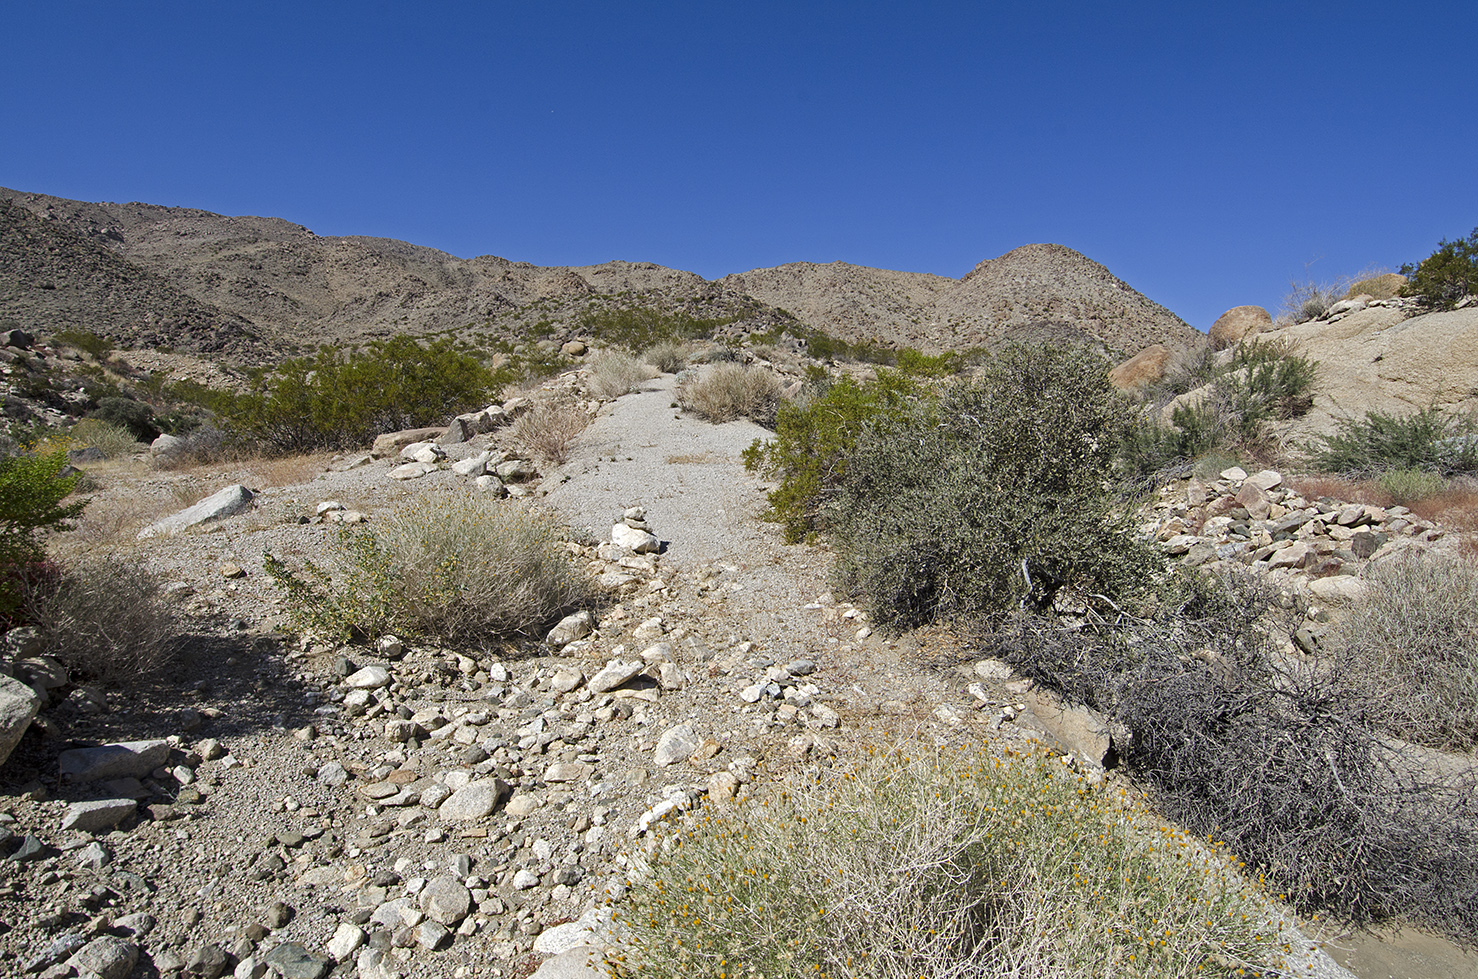 After crossing the wash, the road begins to climb once again. N34.06736 W116.04536